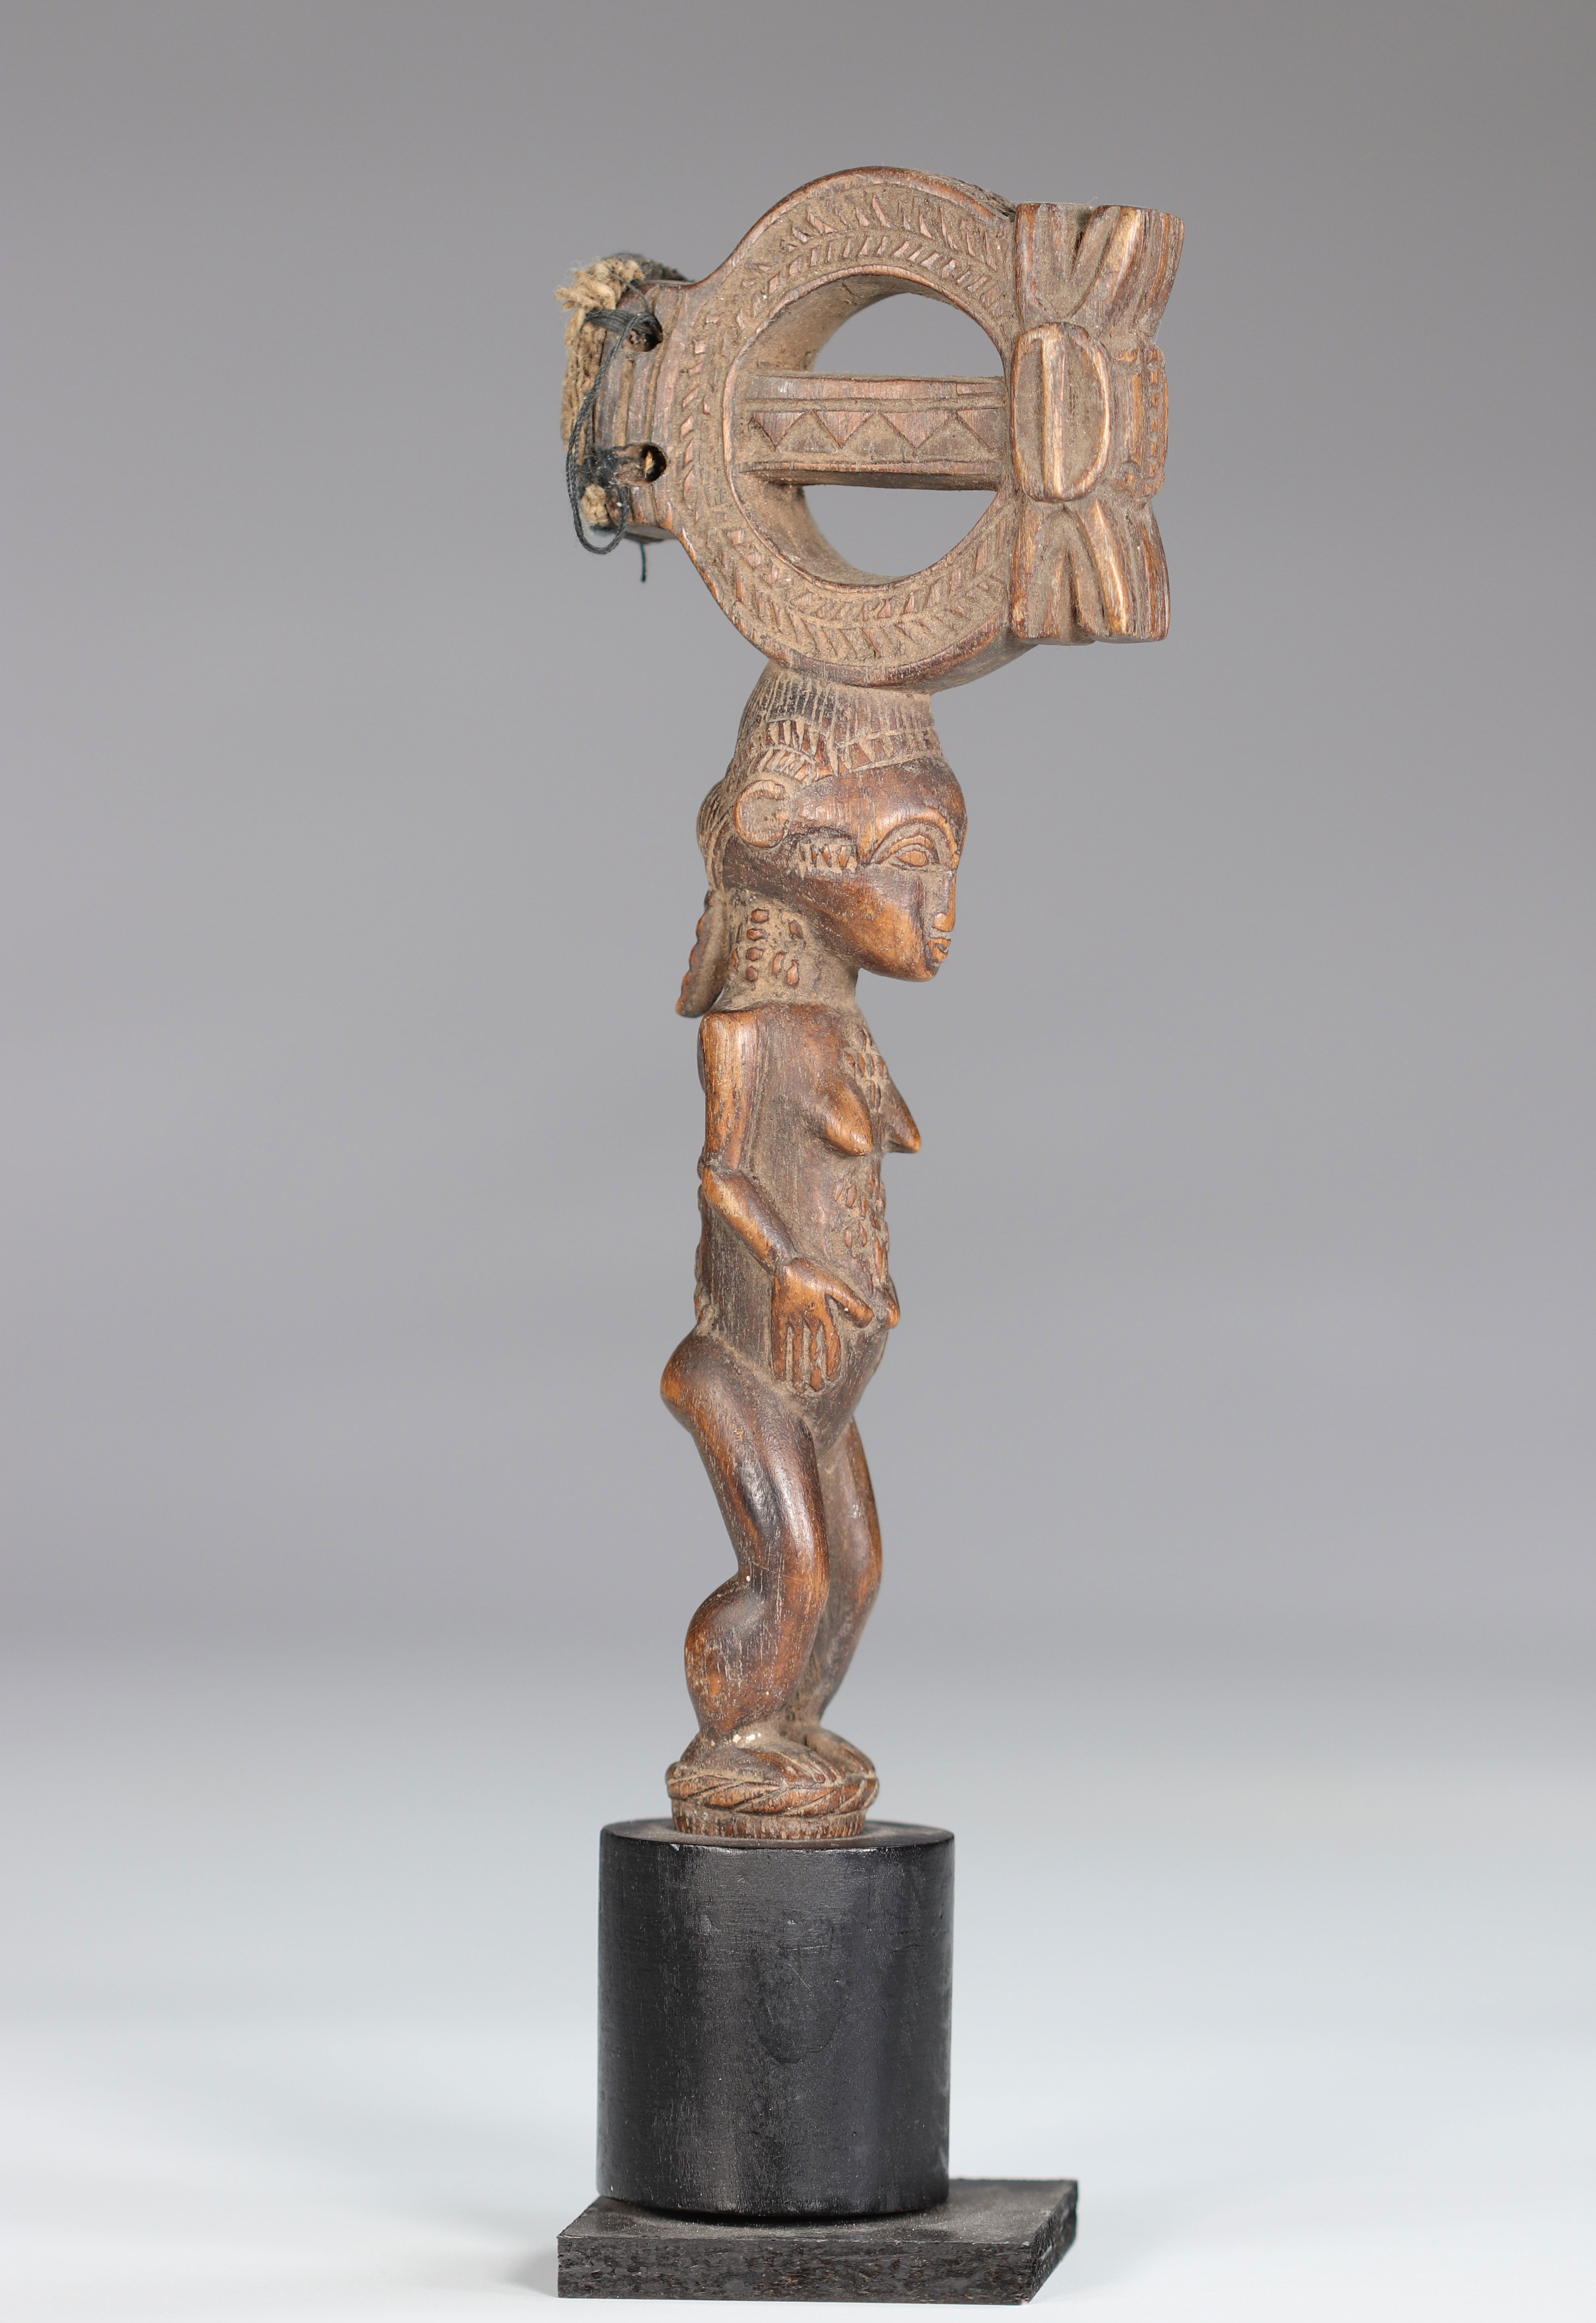 Baoule wooden hammer carved of a female character - Image 3 of 6